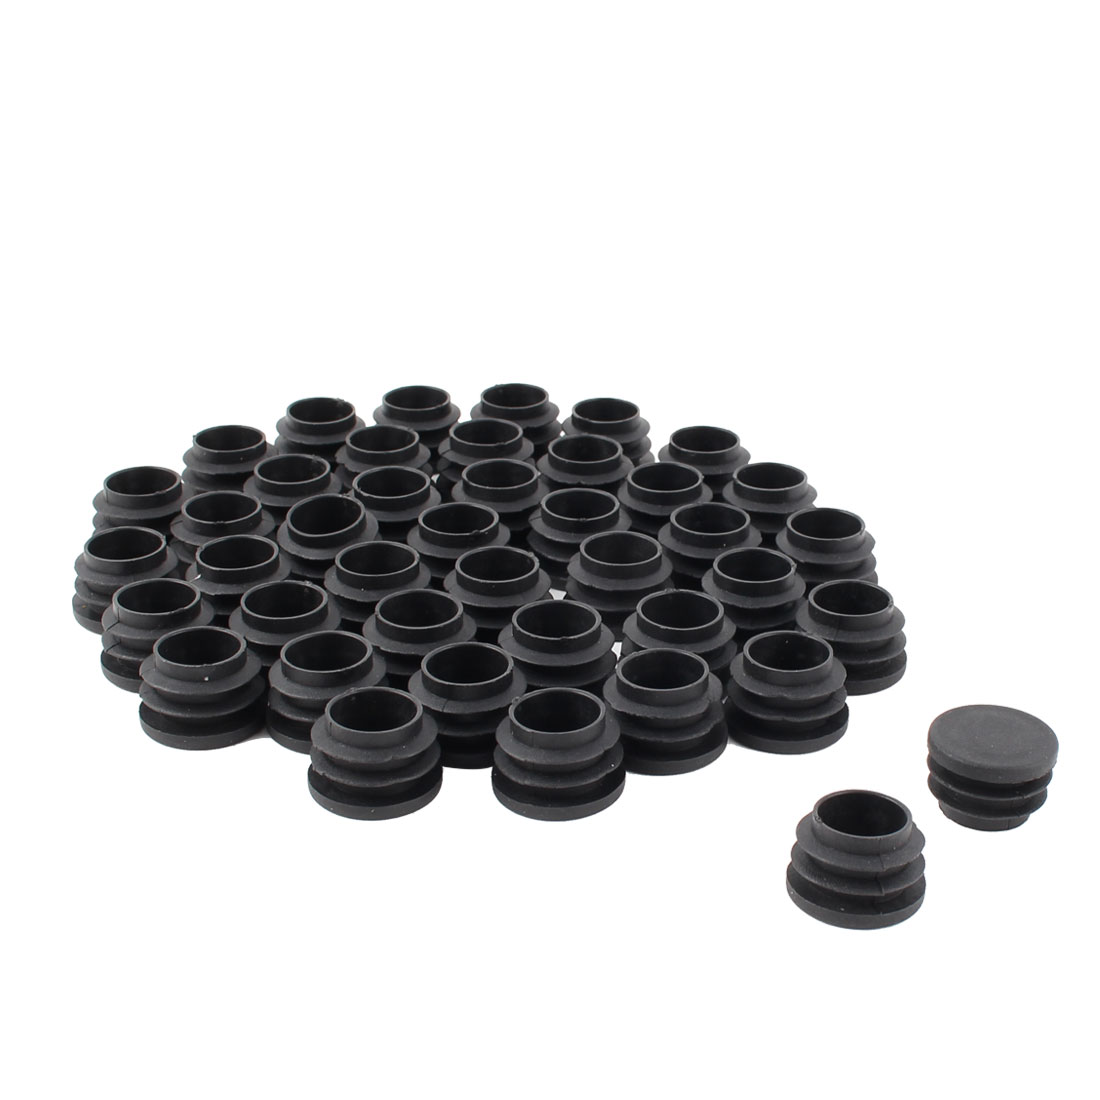 Furniture Table Chair Legs Plastic Flat Base Round Tube Pipe Insert Cap Cover Black 25mm Dia 40pcs